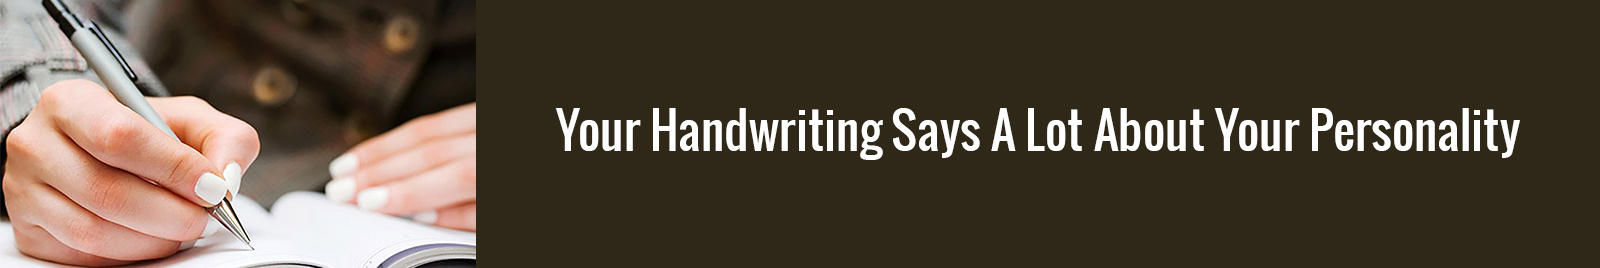 handwriting reflects your personality